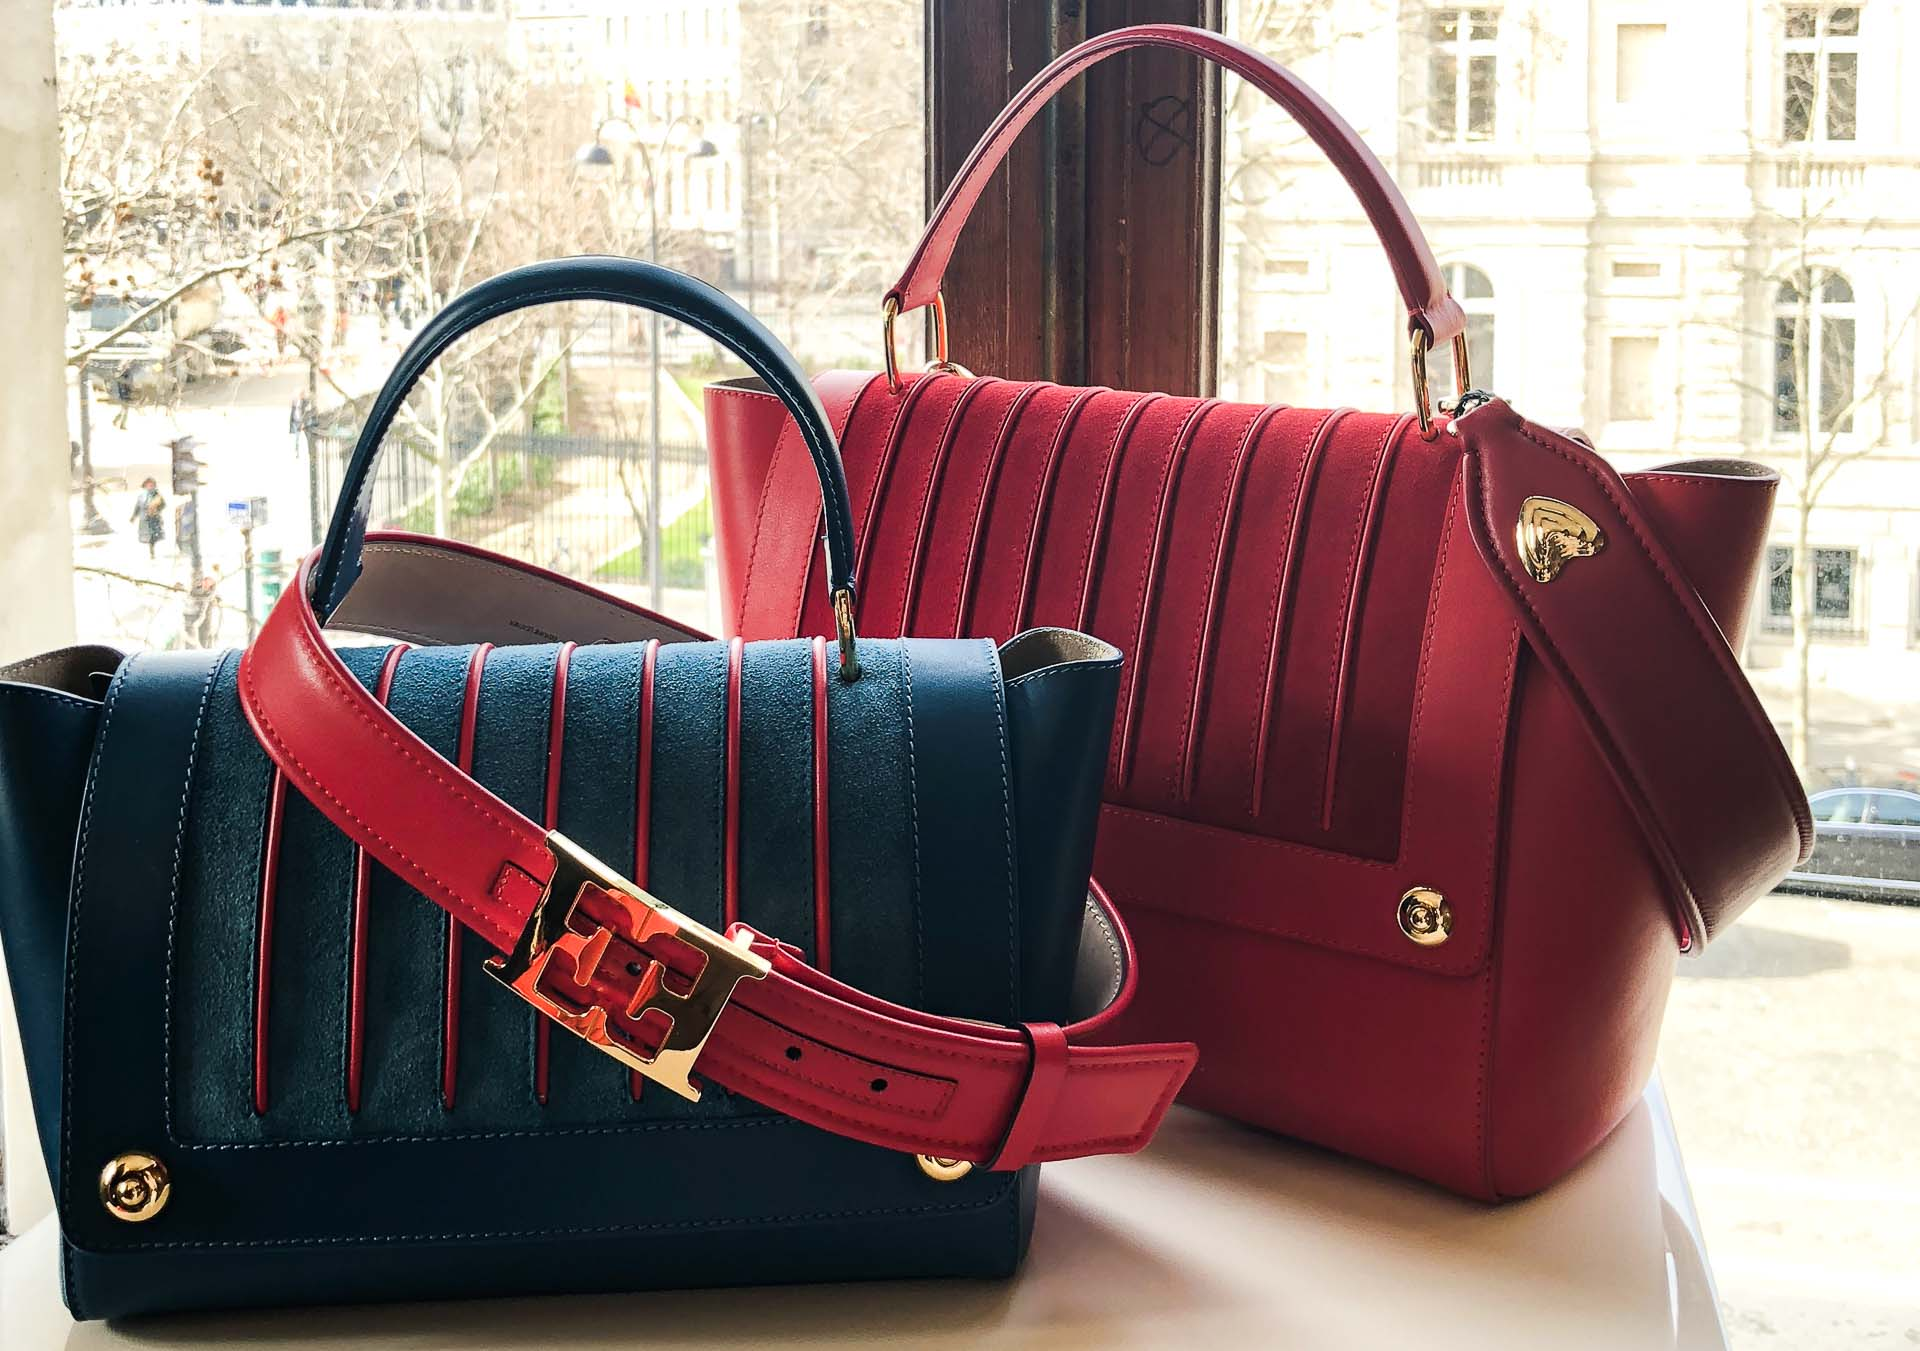 Brunette from Wall Street Escada blue and red bags and belt